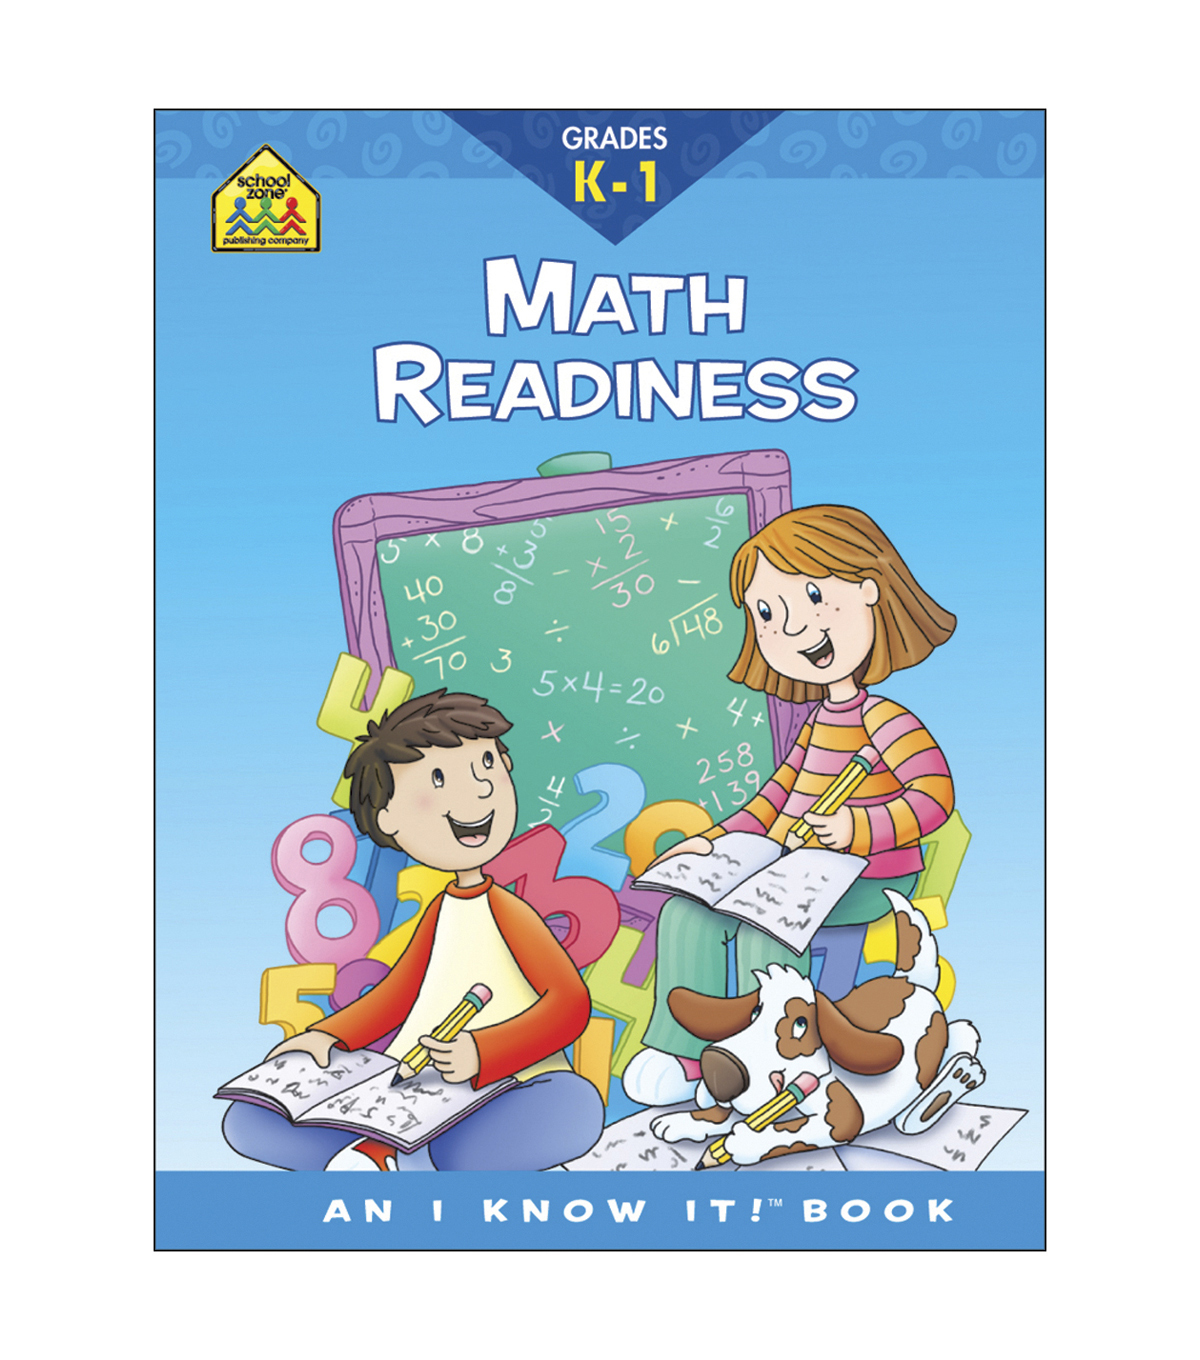 Curriculum Workbooks 32 Pages-Math Readiness Grades K-1